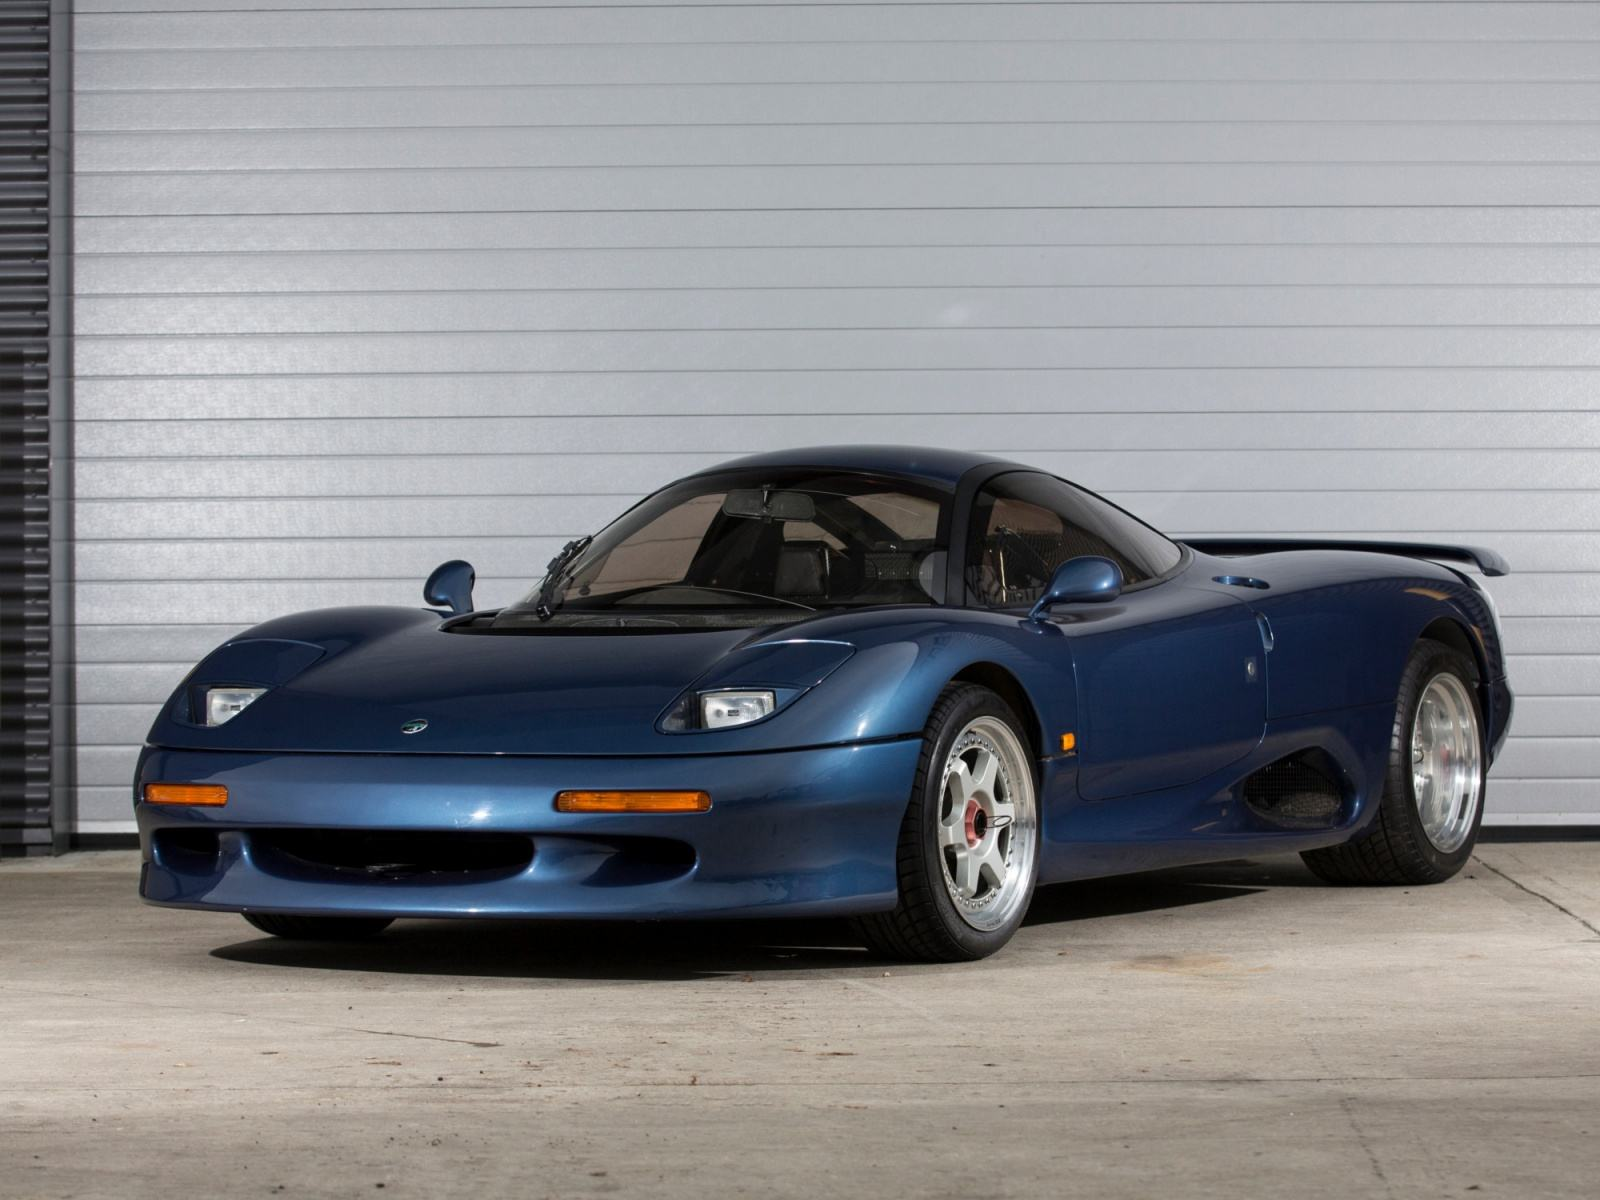 XJR-15: Jaguar's Forgotten Supercar From the '90s